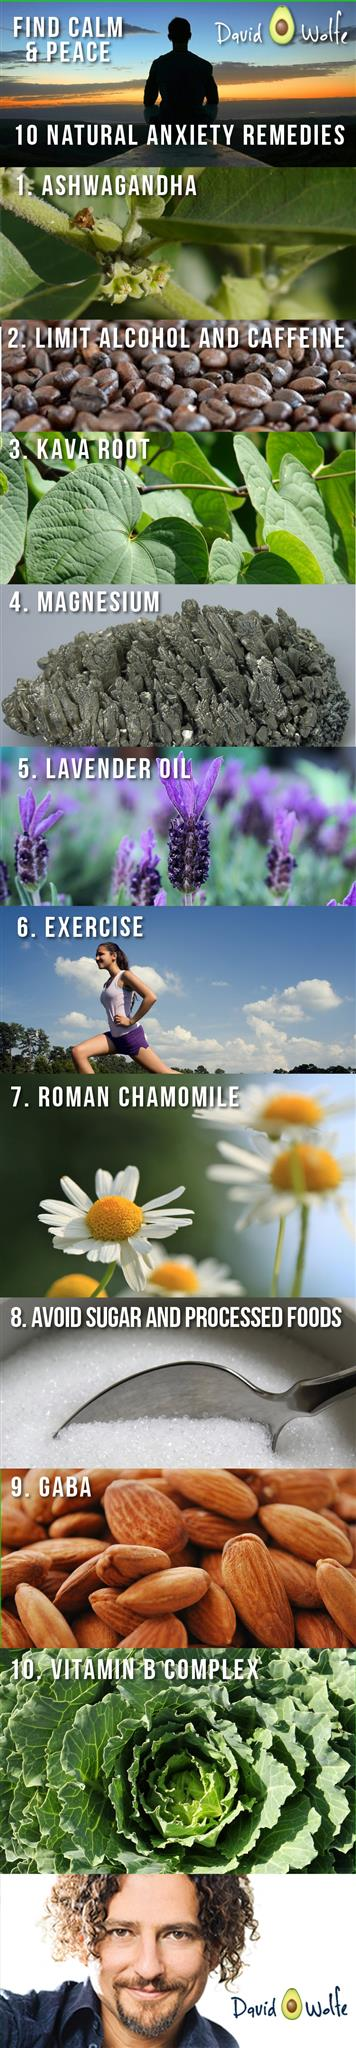 10 natural anxiety remedies